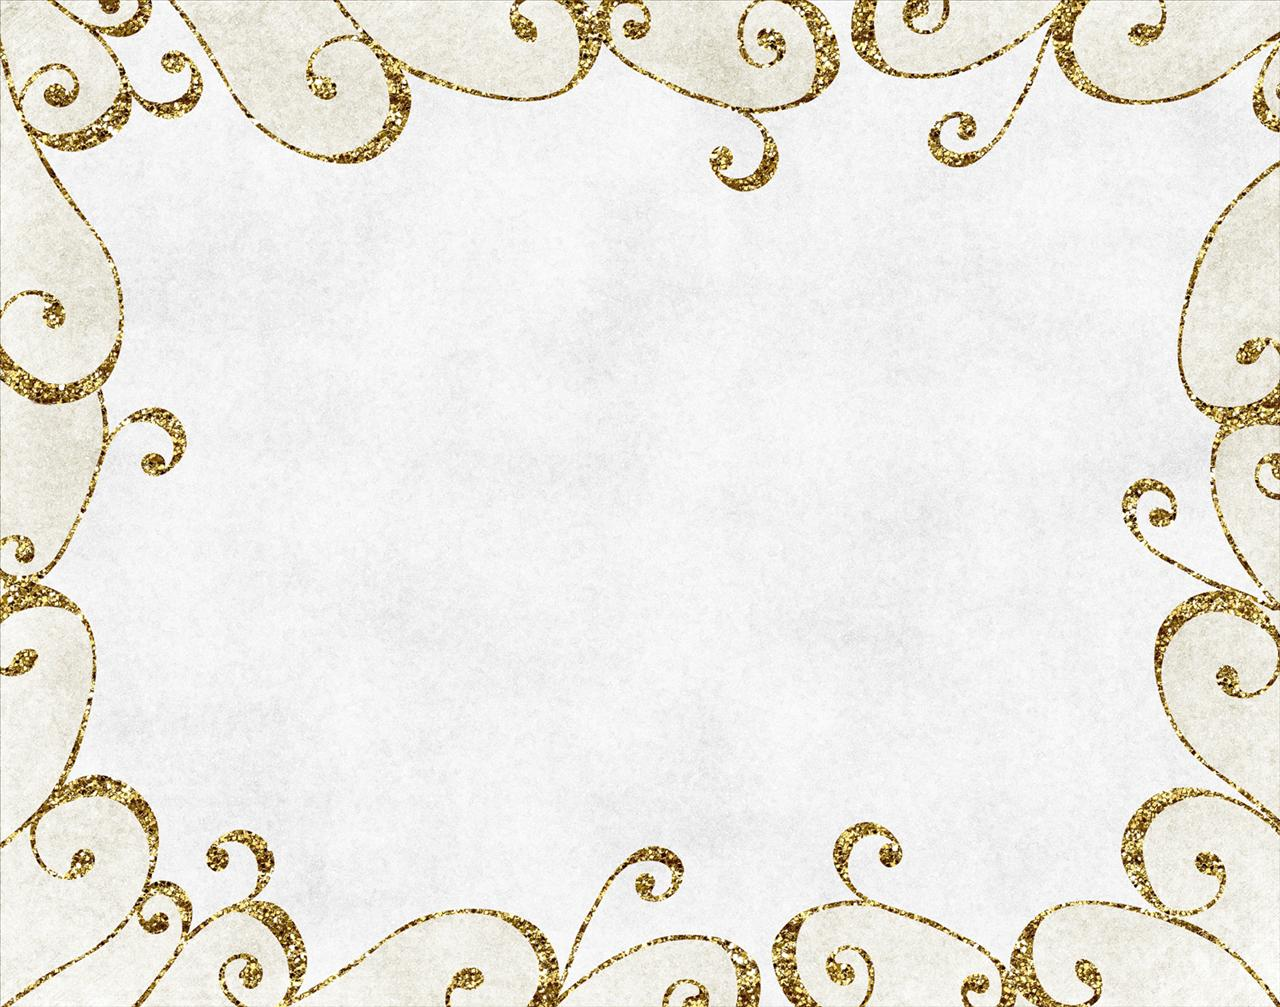 Black gold silver border clipart clip royalty free Free Formal Corner Cliparts, Download Free Clip Art, Free Clip Art ... clip royalty free